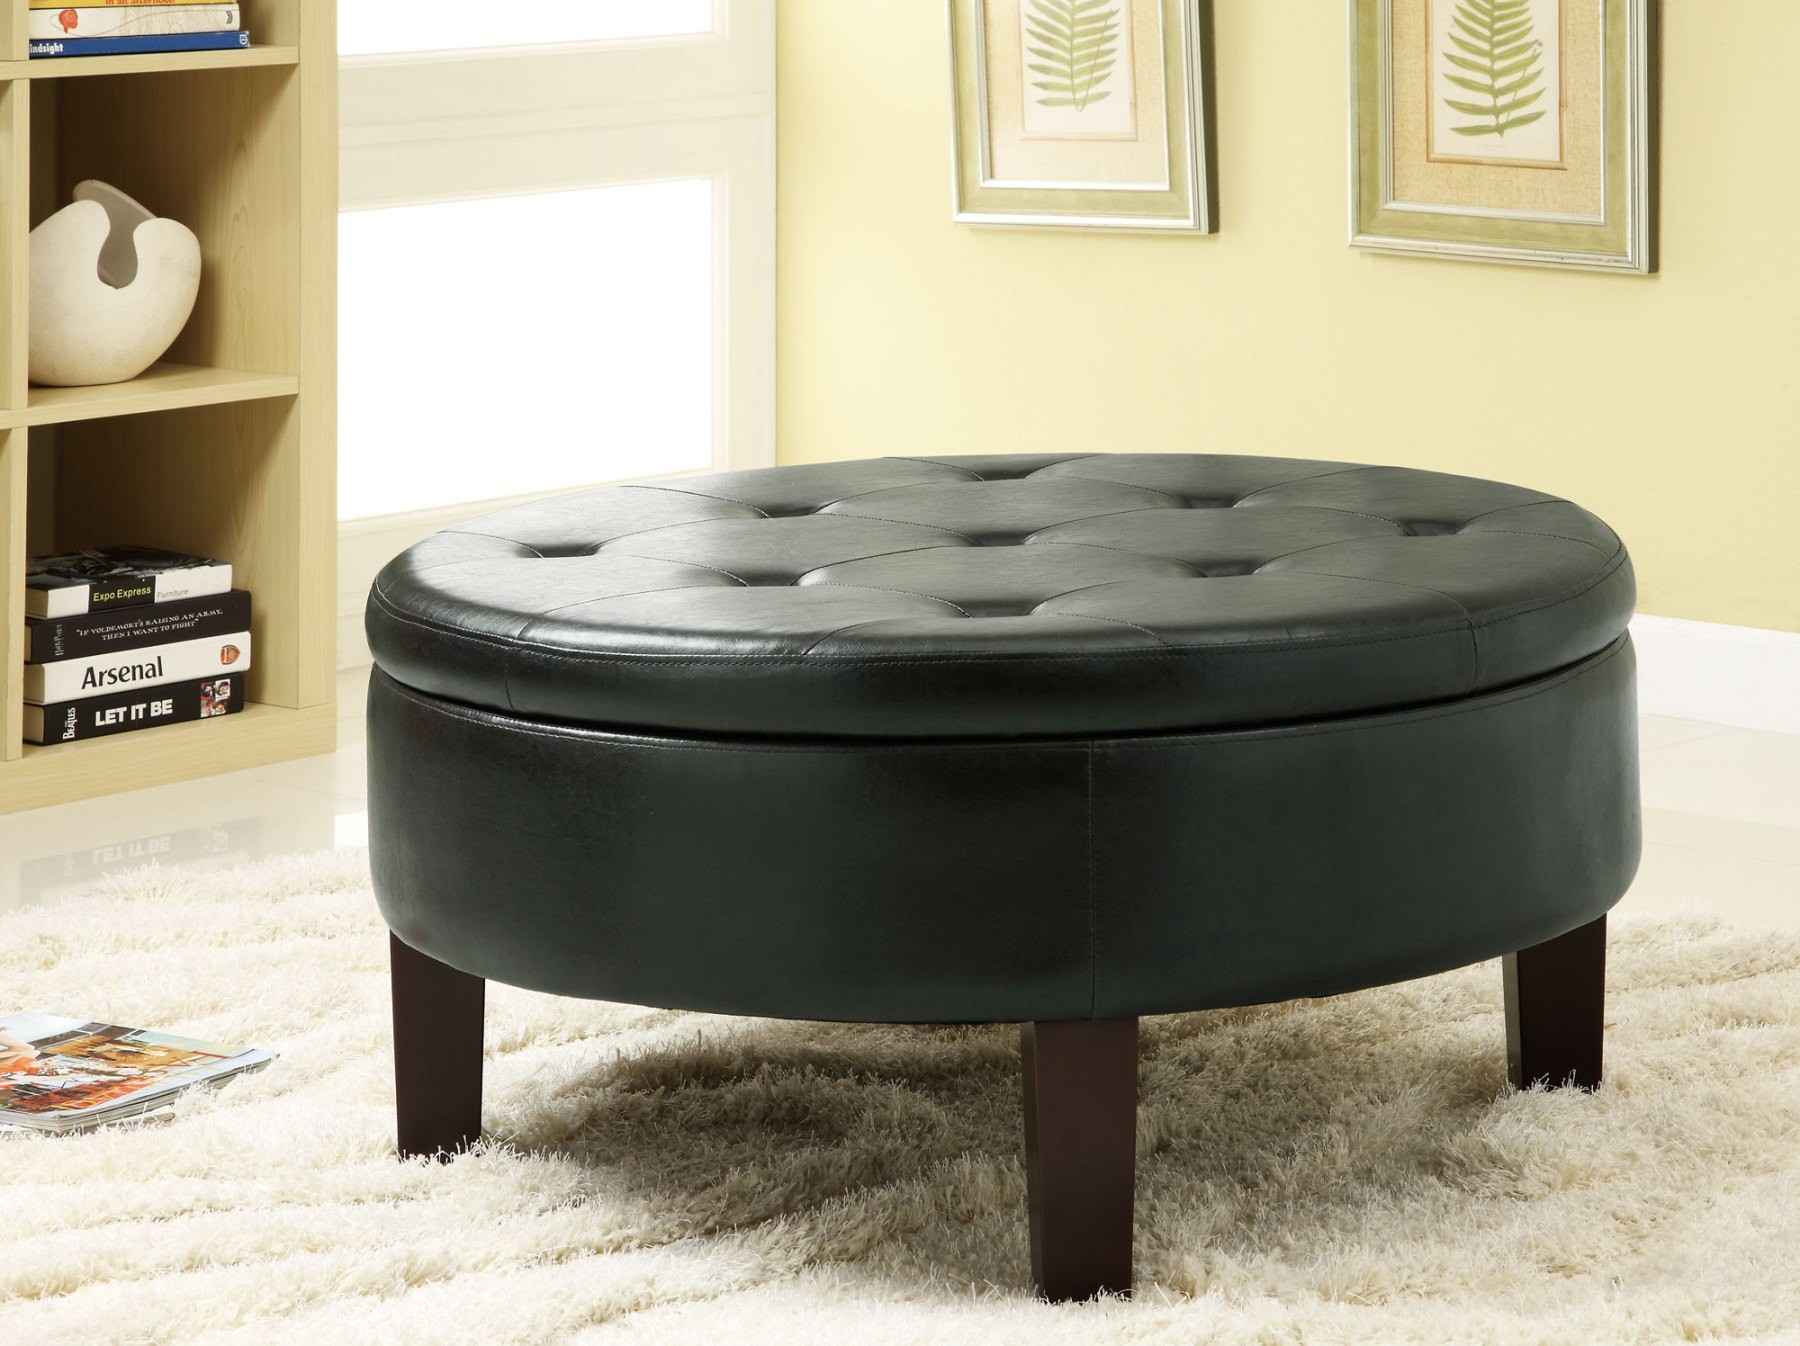 Awesome Round Coffee Tables with Storage